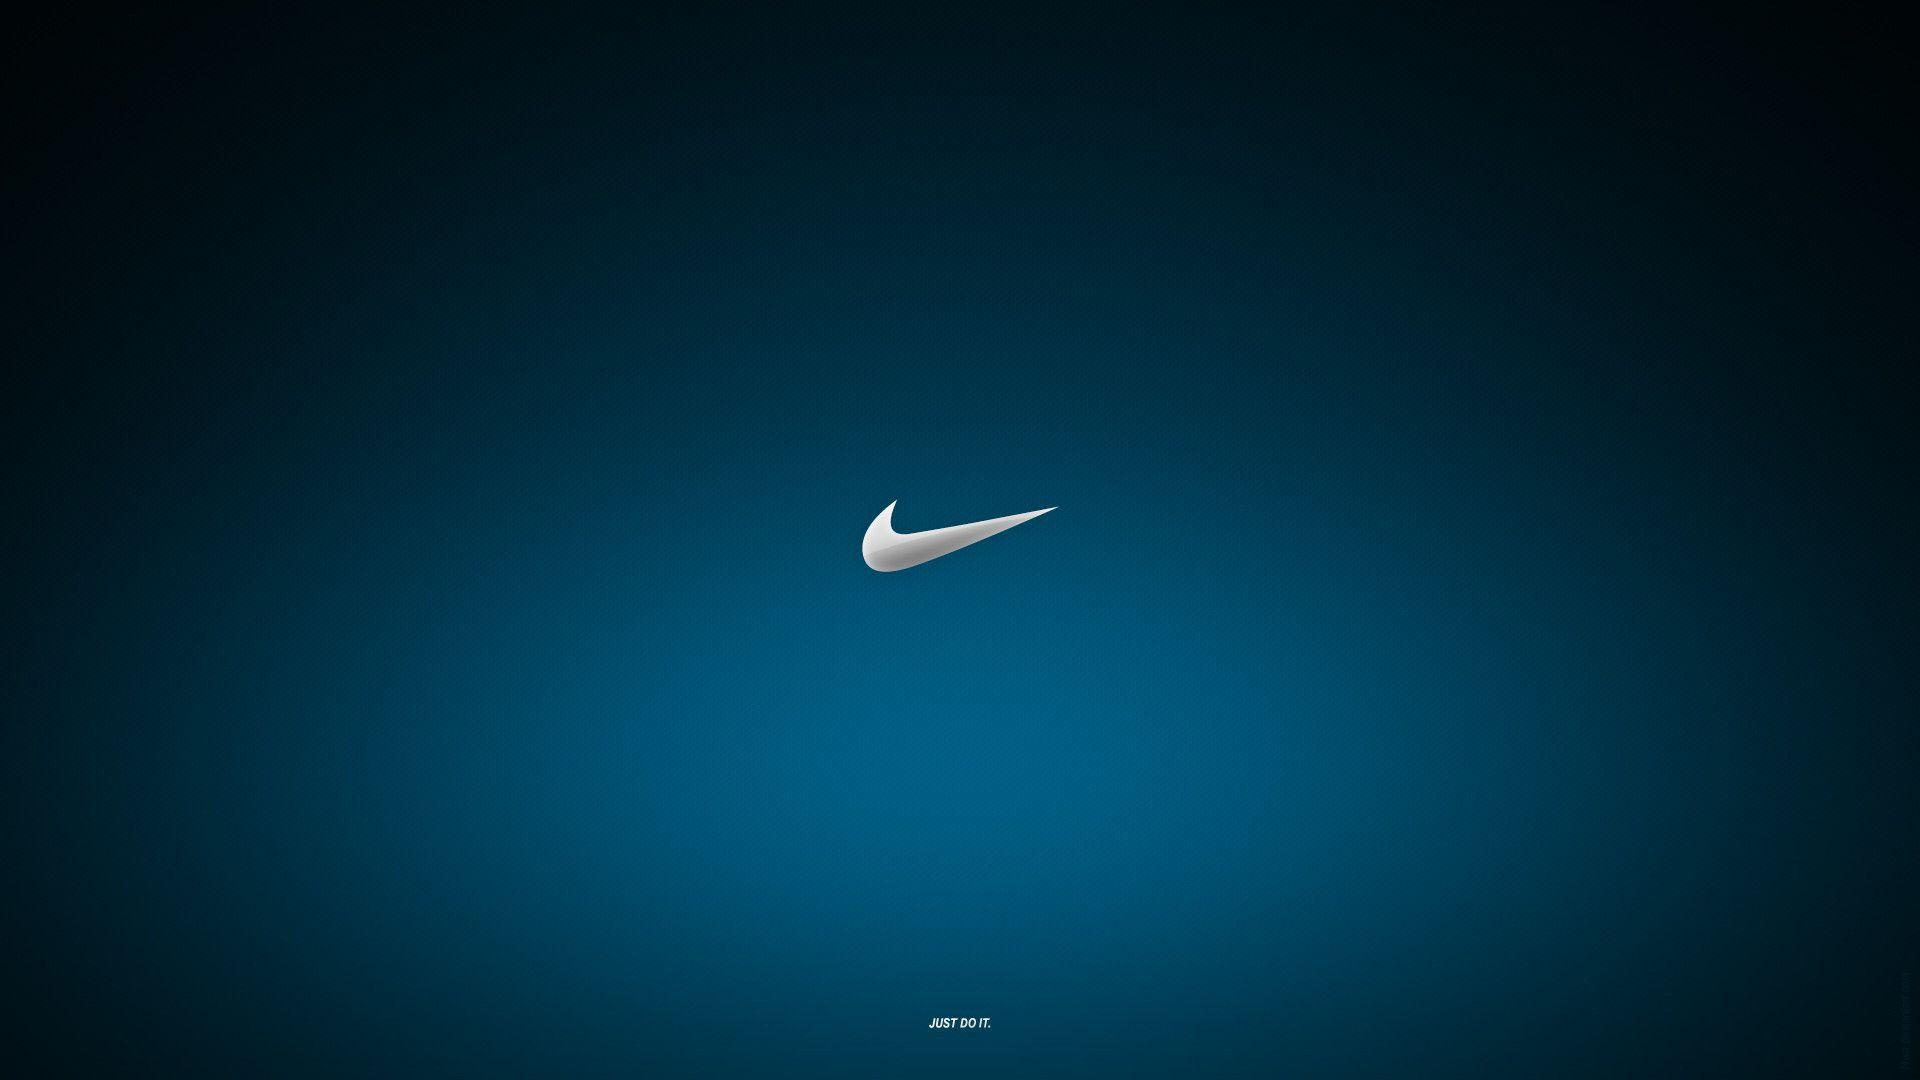 Nike Wallpapers Soccer 1920x1080